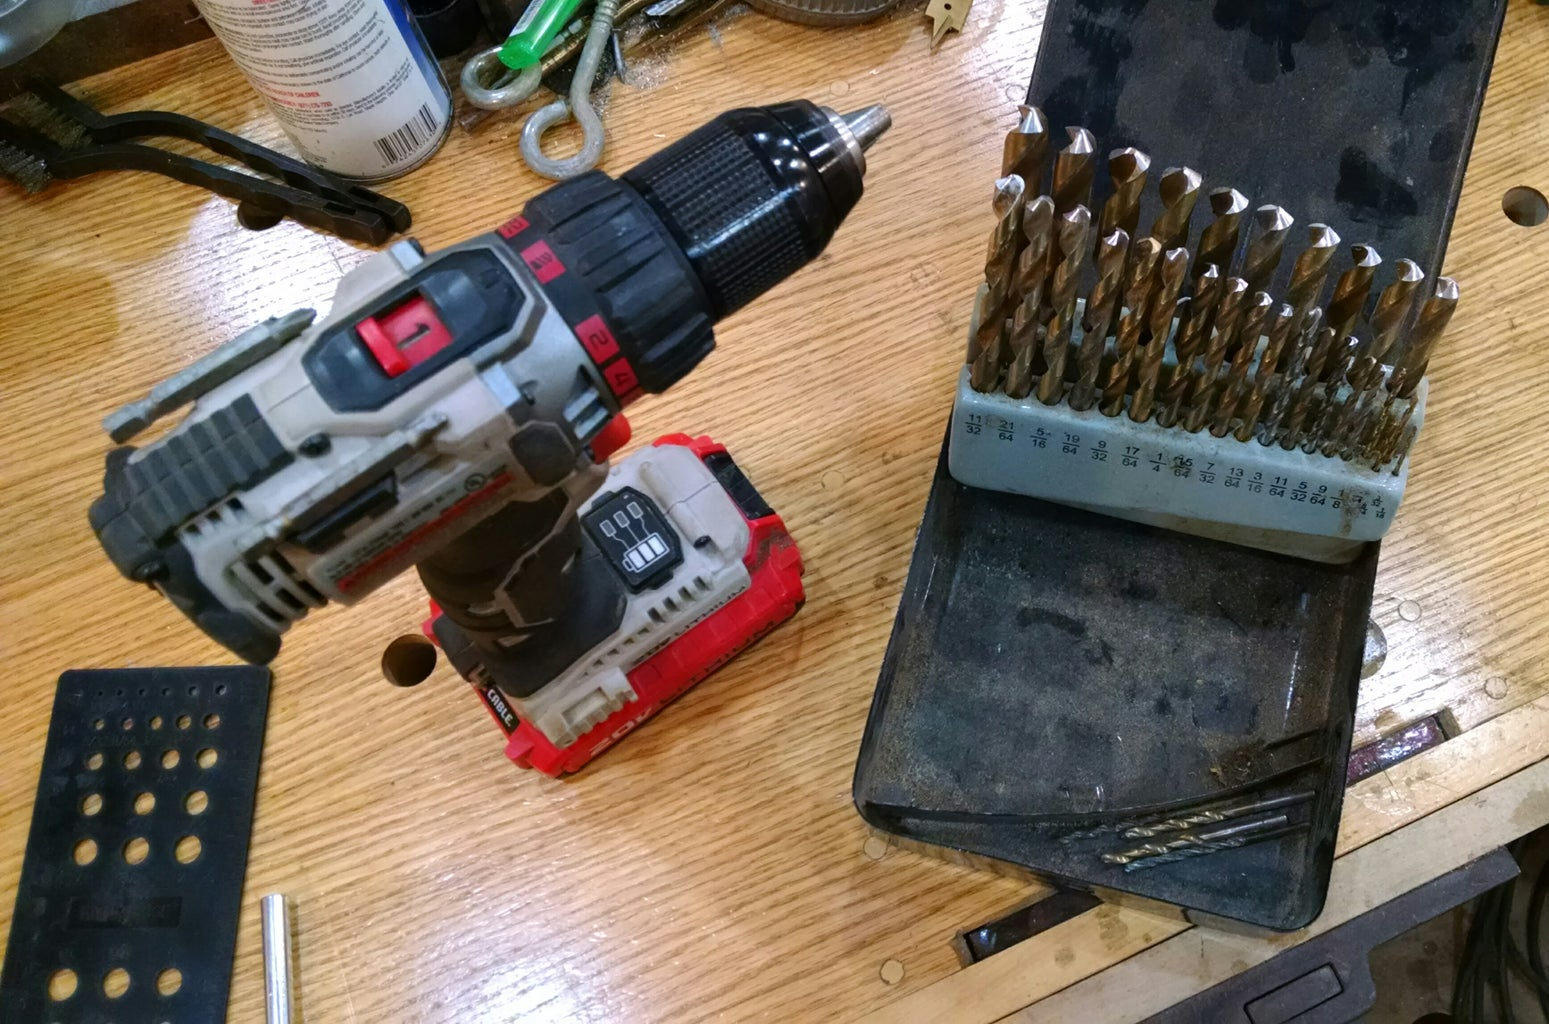 Project 1: Measure and Drill